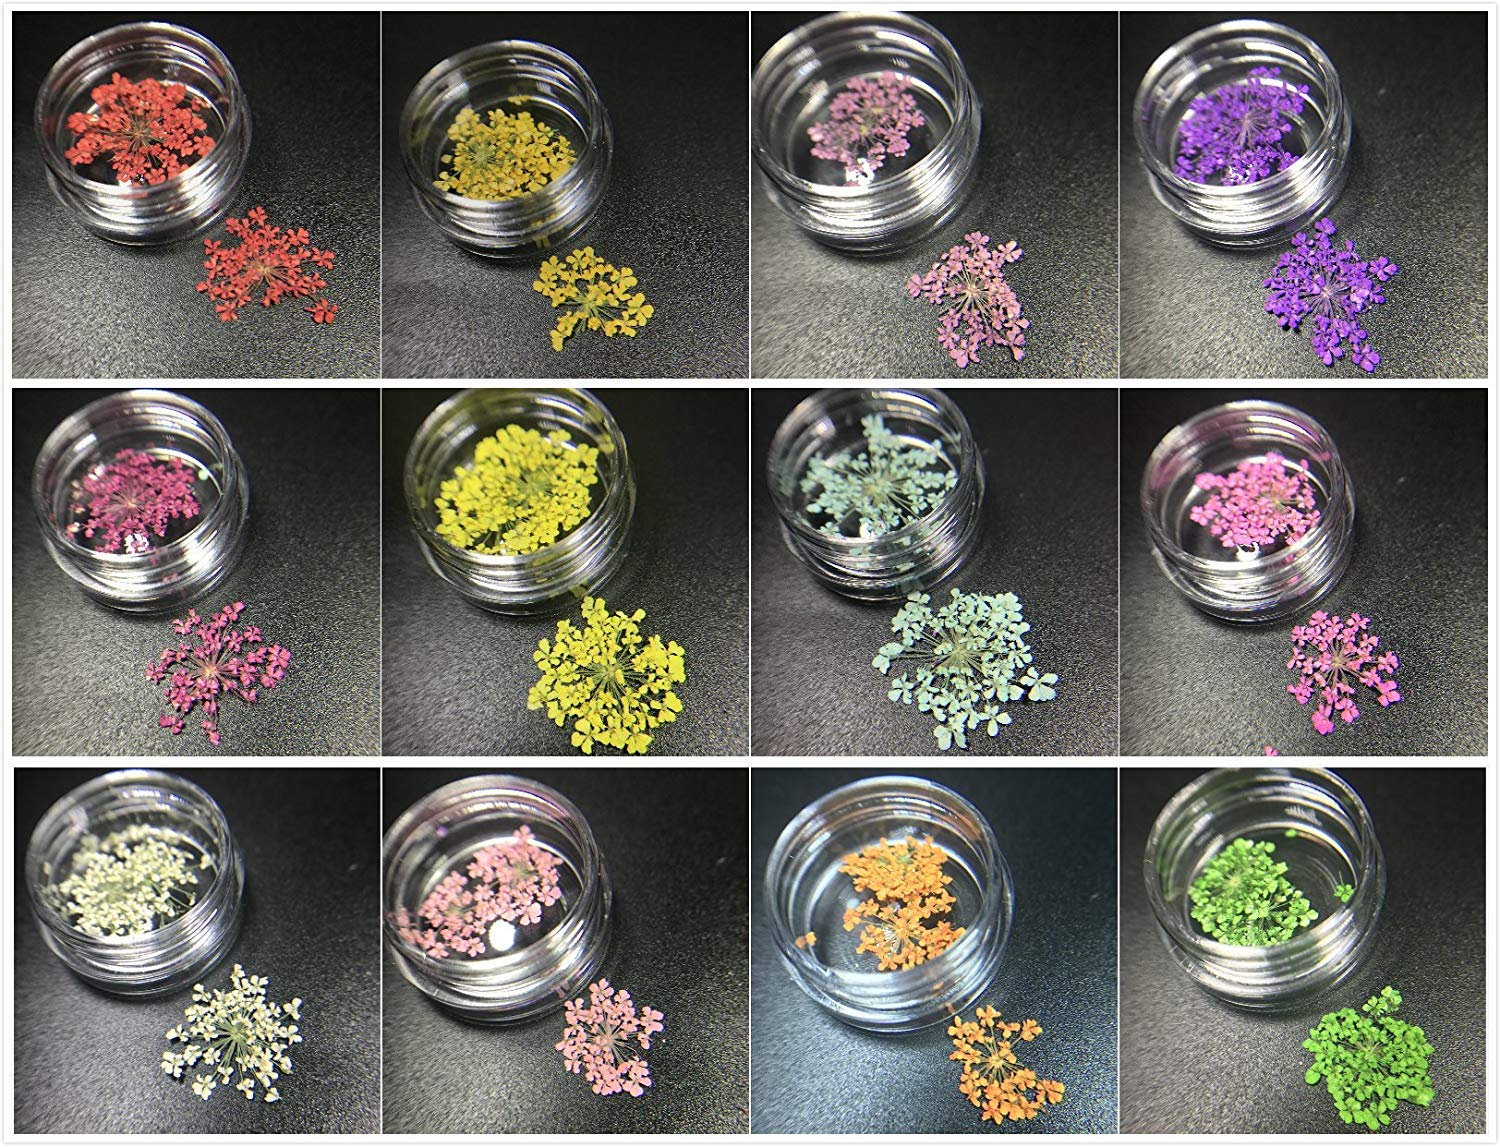 Amazon.com: Joligel Two Part Epoxy Resin Bicomponent AB Hard Type Glue for Crafts Jewelry Making 400ml with 15 Pearlescent Pigments 12 Dried Flowers 12 ...